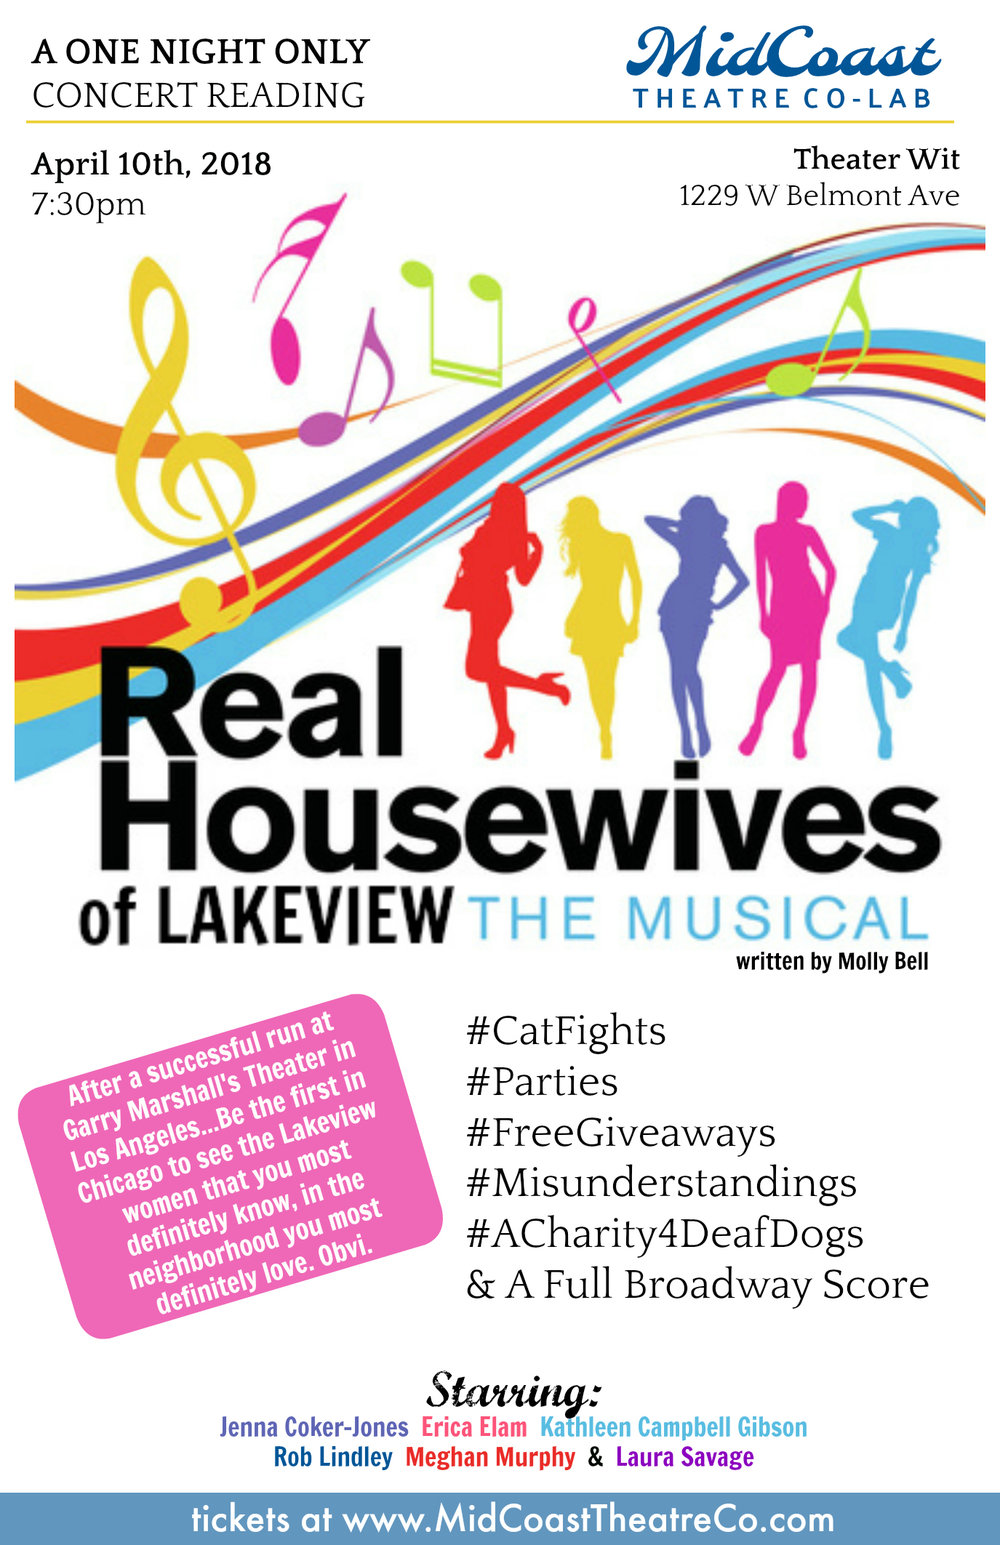 MidCoast Theatre Co-Lab @ Theater Wit  April 10th, 2018   - Jenna (Artistic Director of MidCoast...) is bringing the REAL HOUSEWIVES Musical she did in Los Angeles to CHICAGO's LAKEVIEW Neighborhood for a ONE NIGHT ONLY Concert at Theater Wit in the Belmont Theater District. Jenna* will reprise her role as Penny Quinoa St Simone & Directing a badass group of Chicago Actors including Rob Lindley*, Erica Elam*, Kathleen Campbell Gibson*, Christina Hall*, Laura Savage* & your host Sawyer Smith*.*Members of Actor's Equity Association